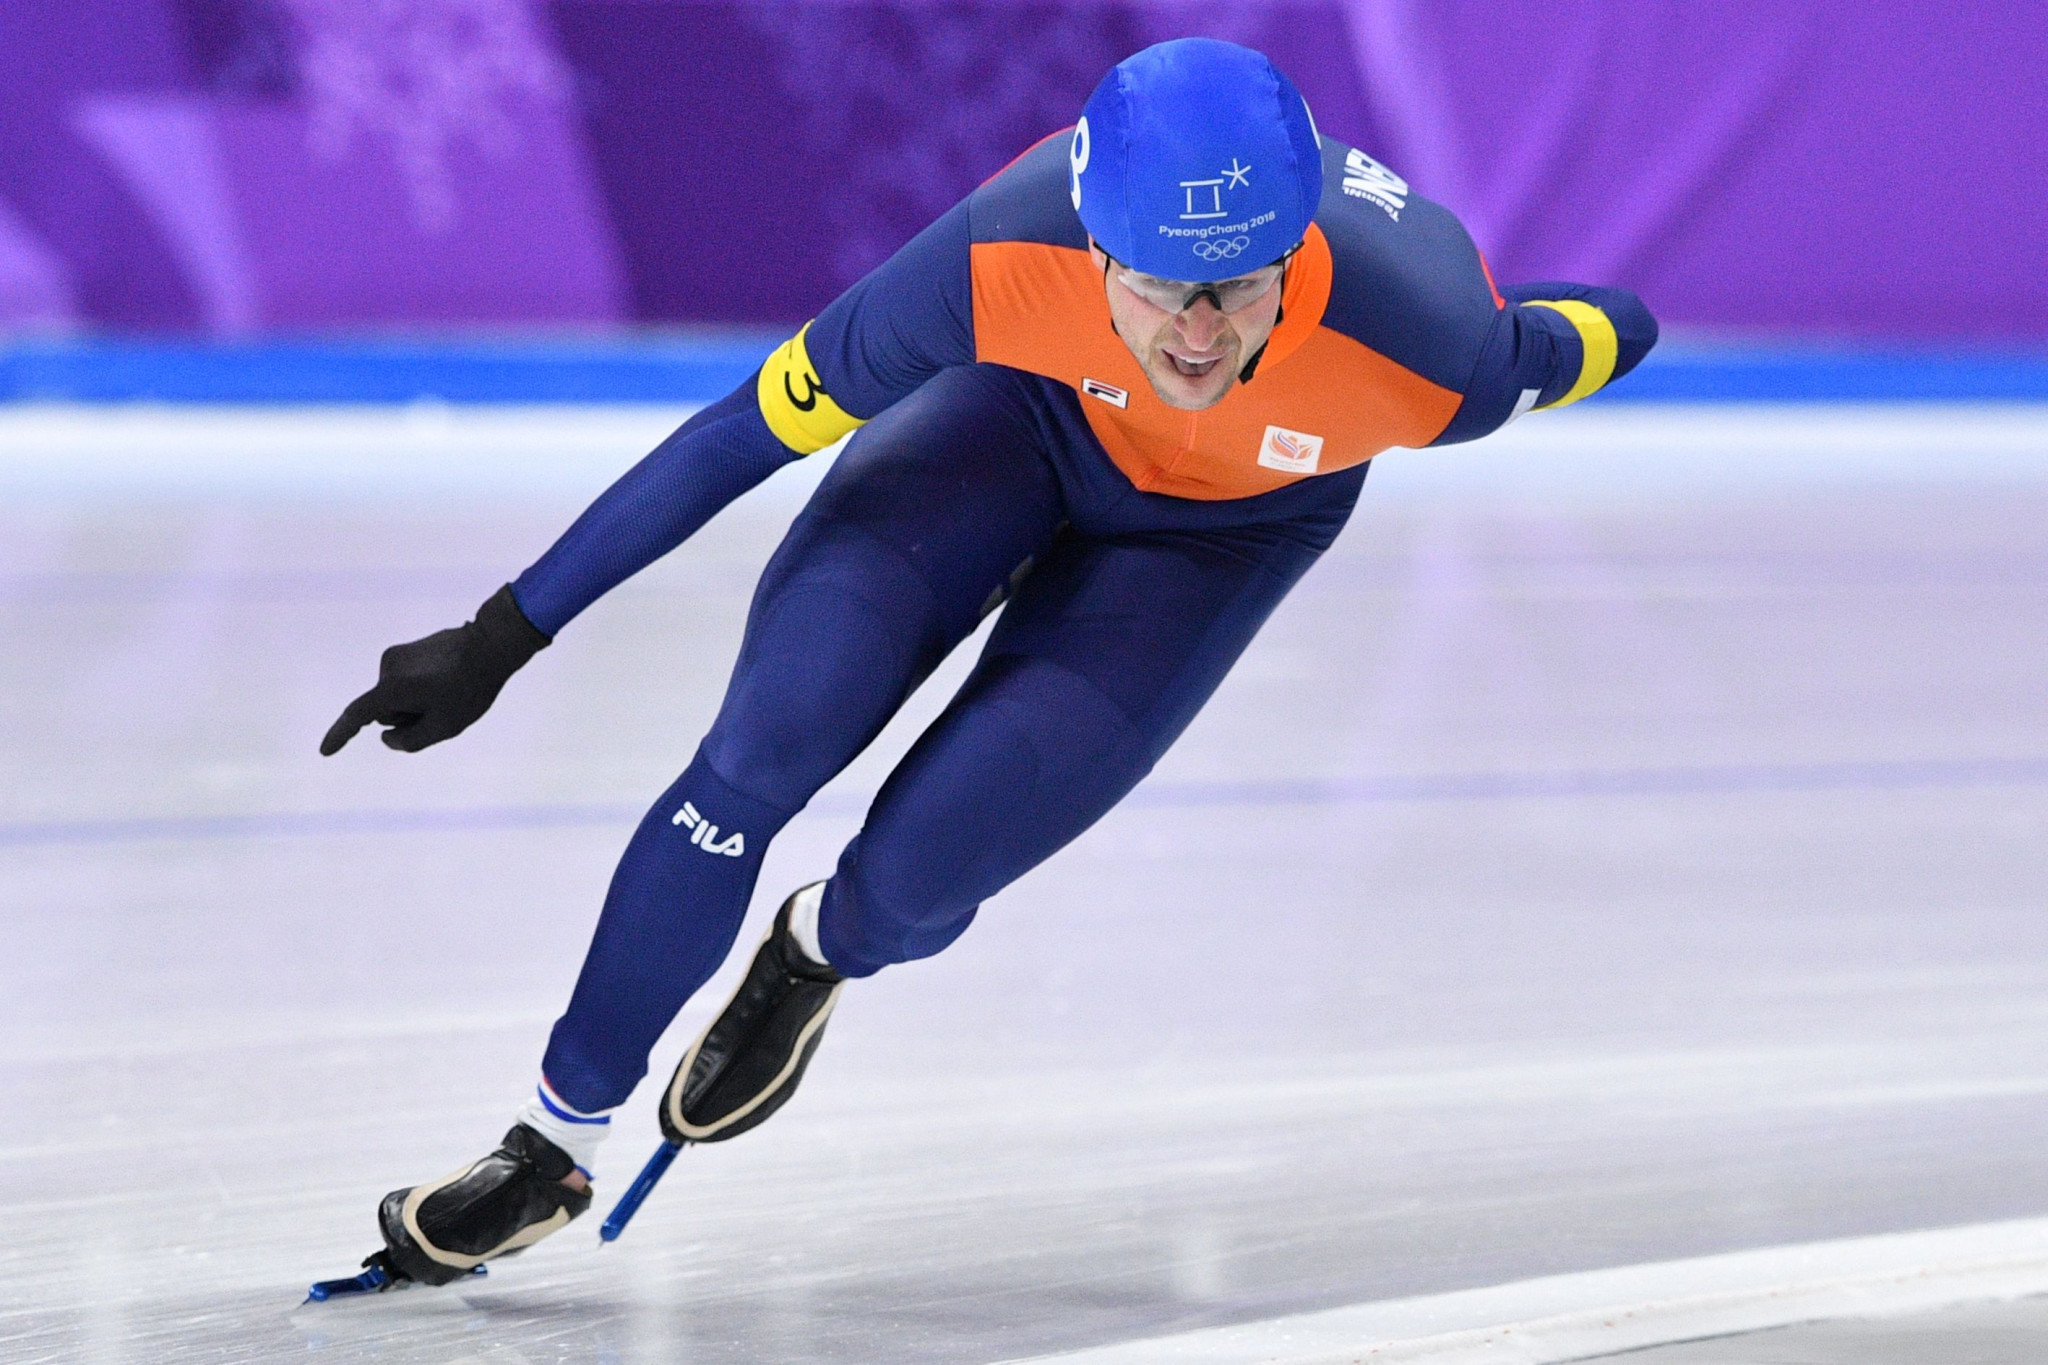 Kramer wins tenth allround title on final day of ISU European Speed Skating Championships